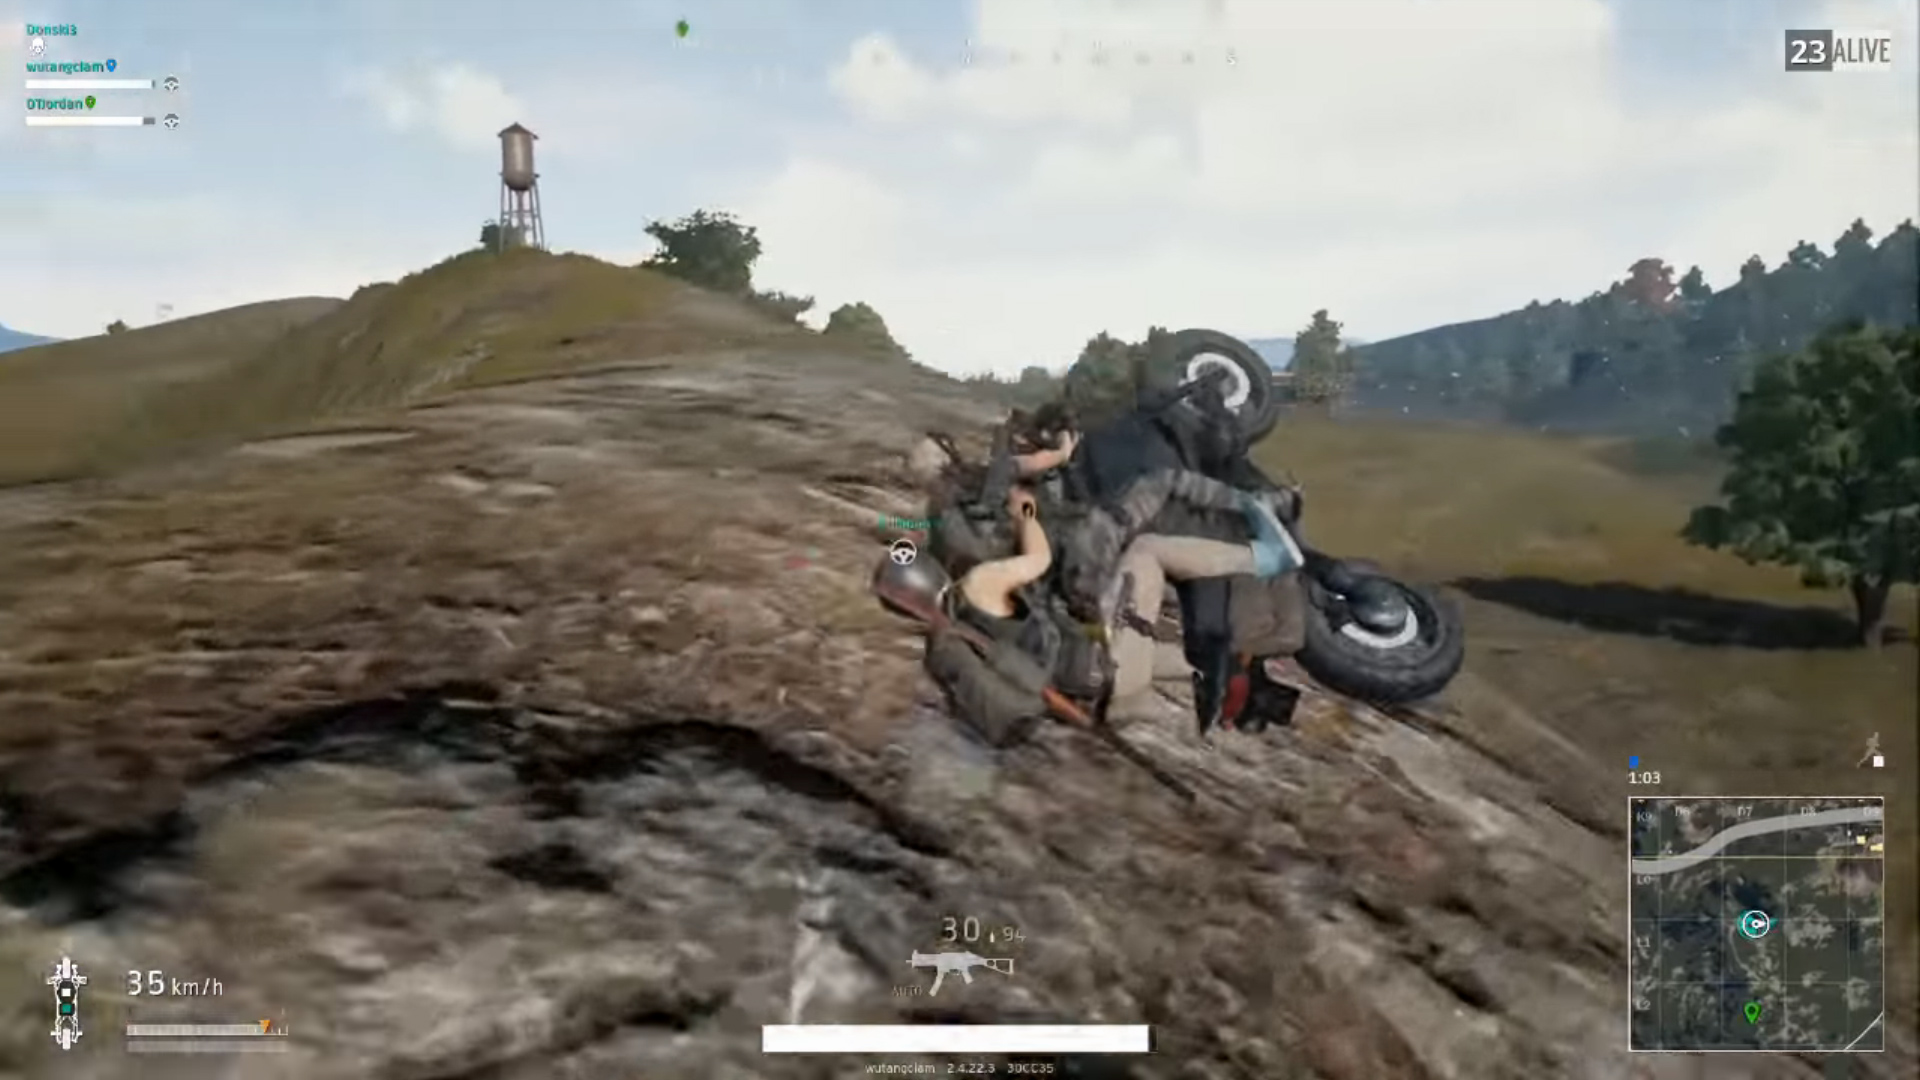 Pubg Multiplayer The D Team Went On A Wild Ride In Pubg And I Have No Clue How We